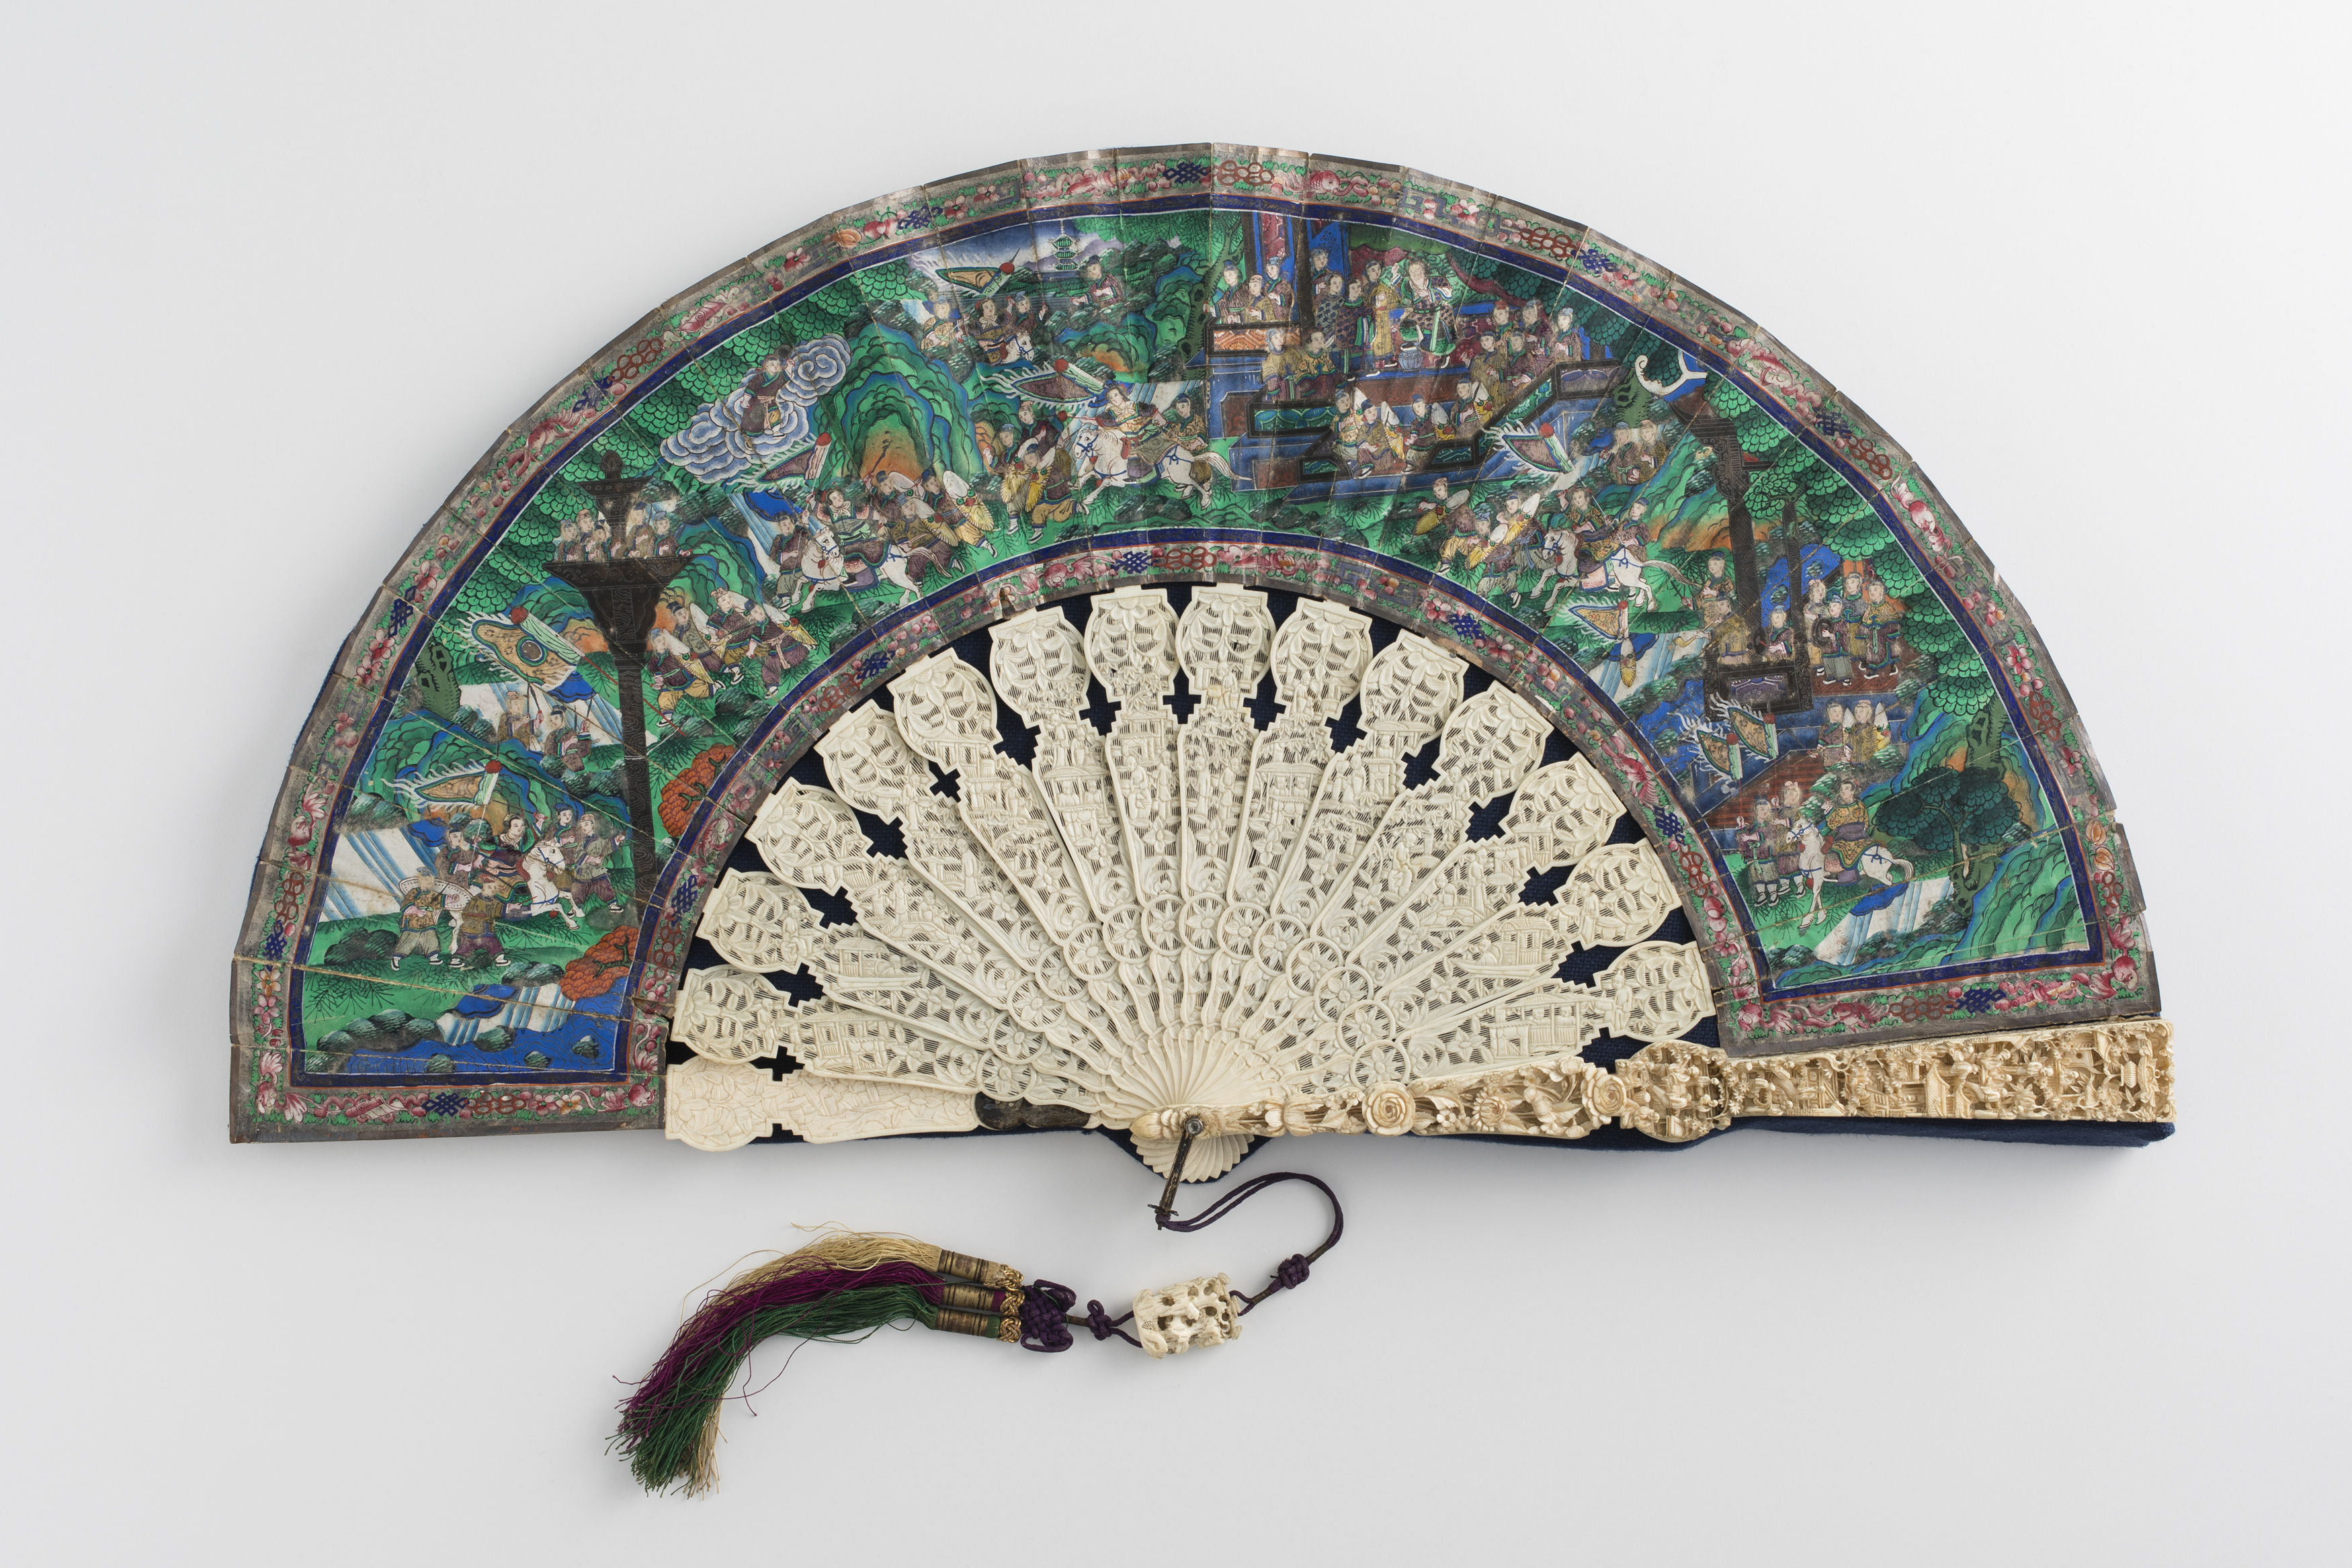 Chinese folding fan open on a grey background. The blades are intricately carved ivory and the painted paper surface (leaves) portrays a busy landscape, depicting what looks like a historic scene with many small brightly coloured figures.